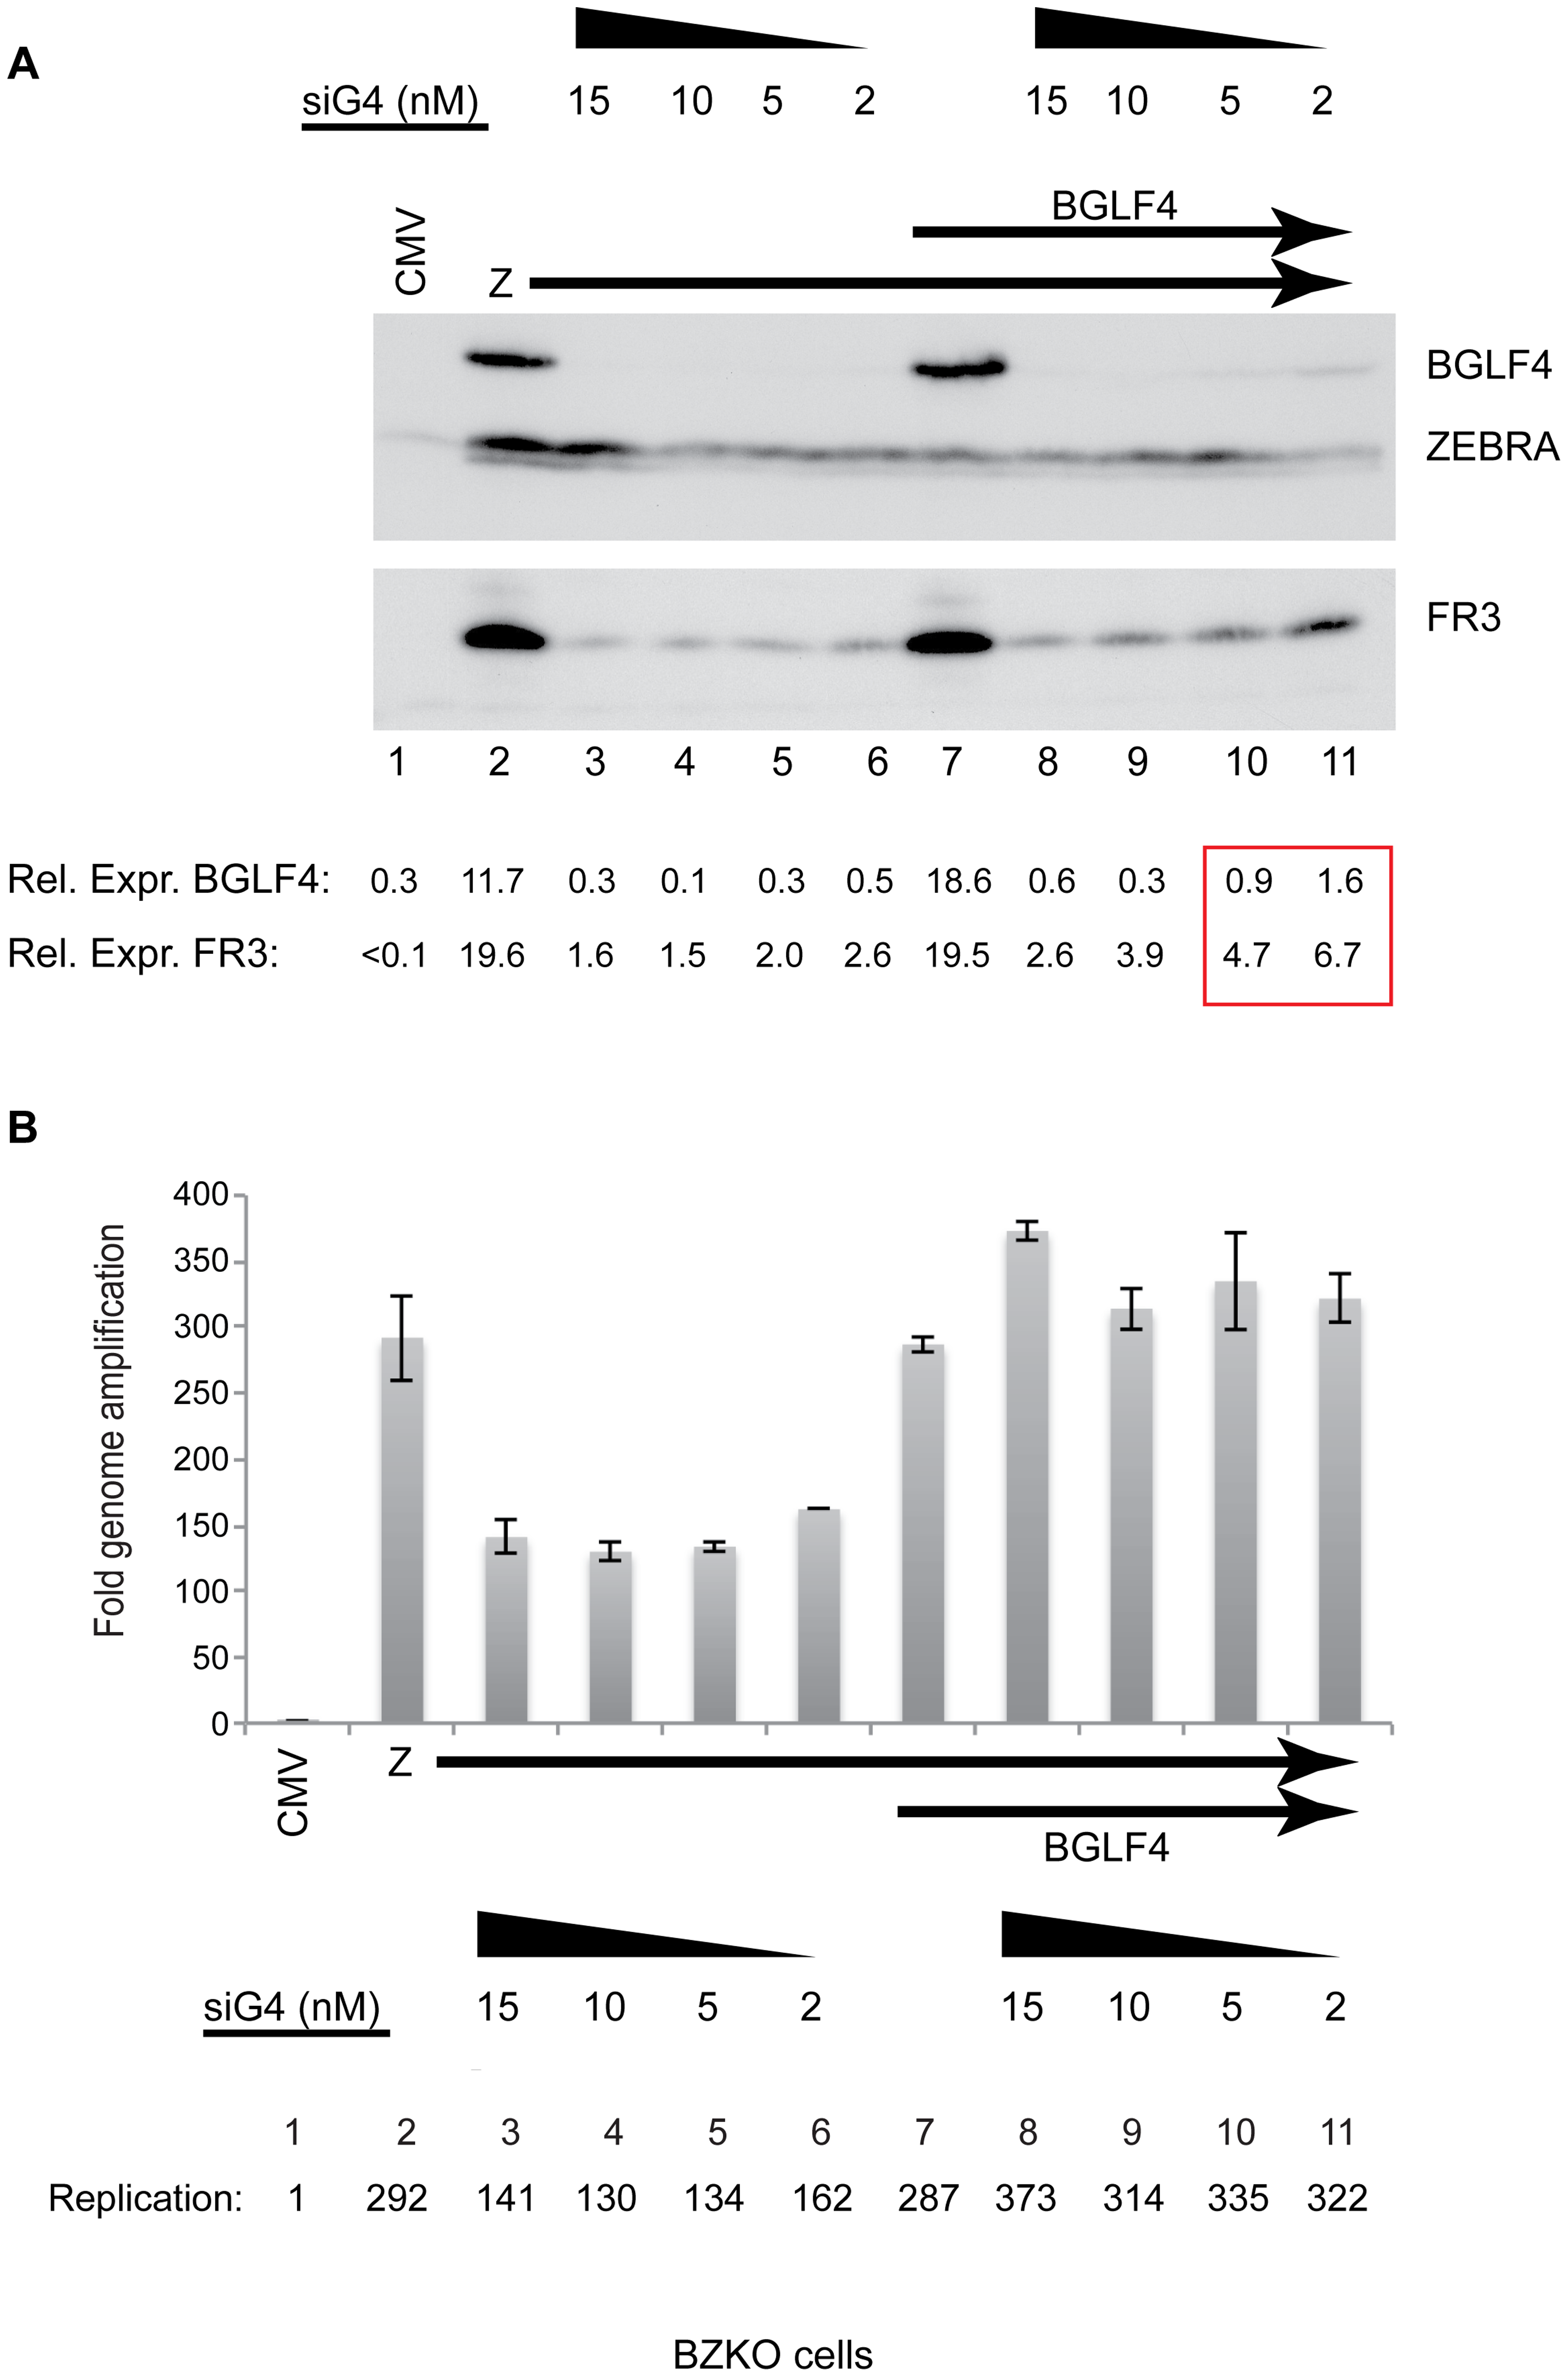 siRNA specific to BGLF4 abolishes expression of the late FR3 protein.